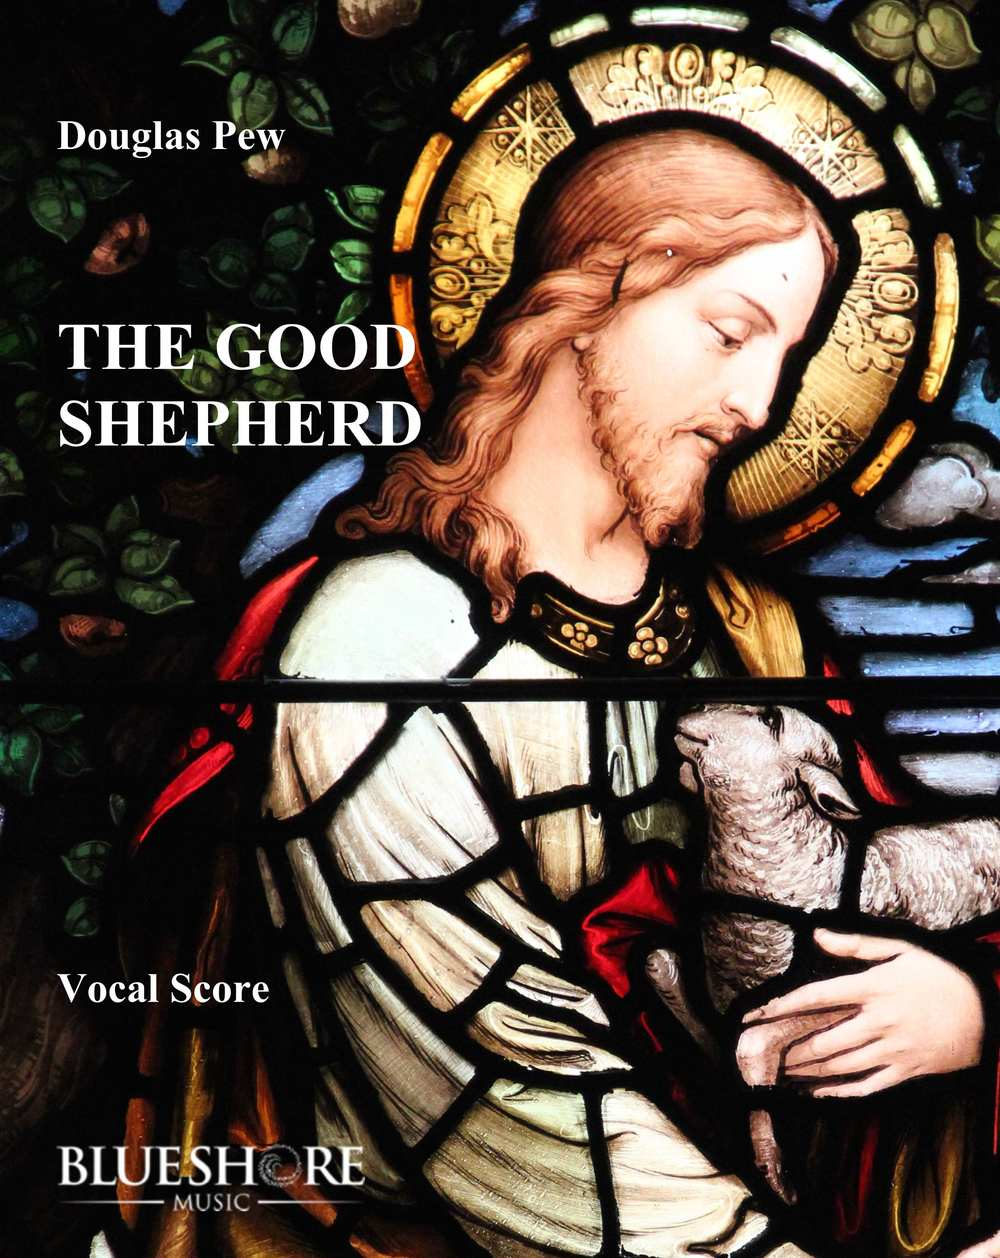 Pew_BSM0060_TheGoodShepherd_VocalScore_Cover_COLOR.jpg